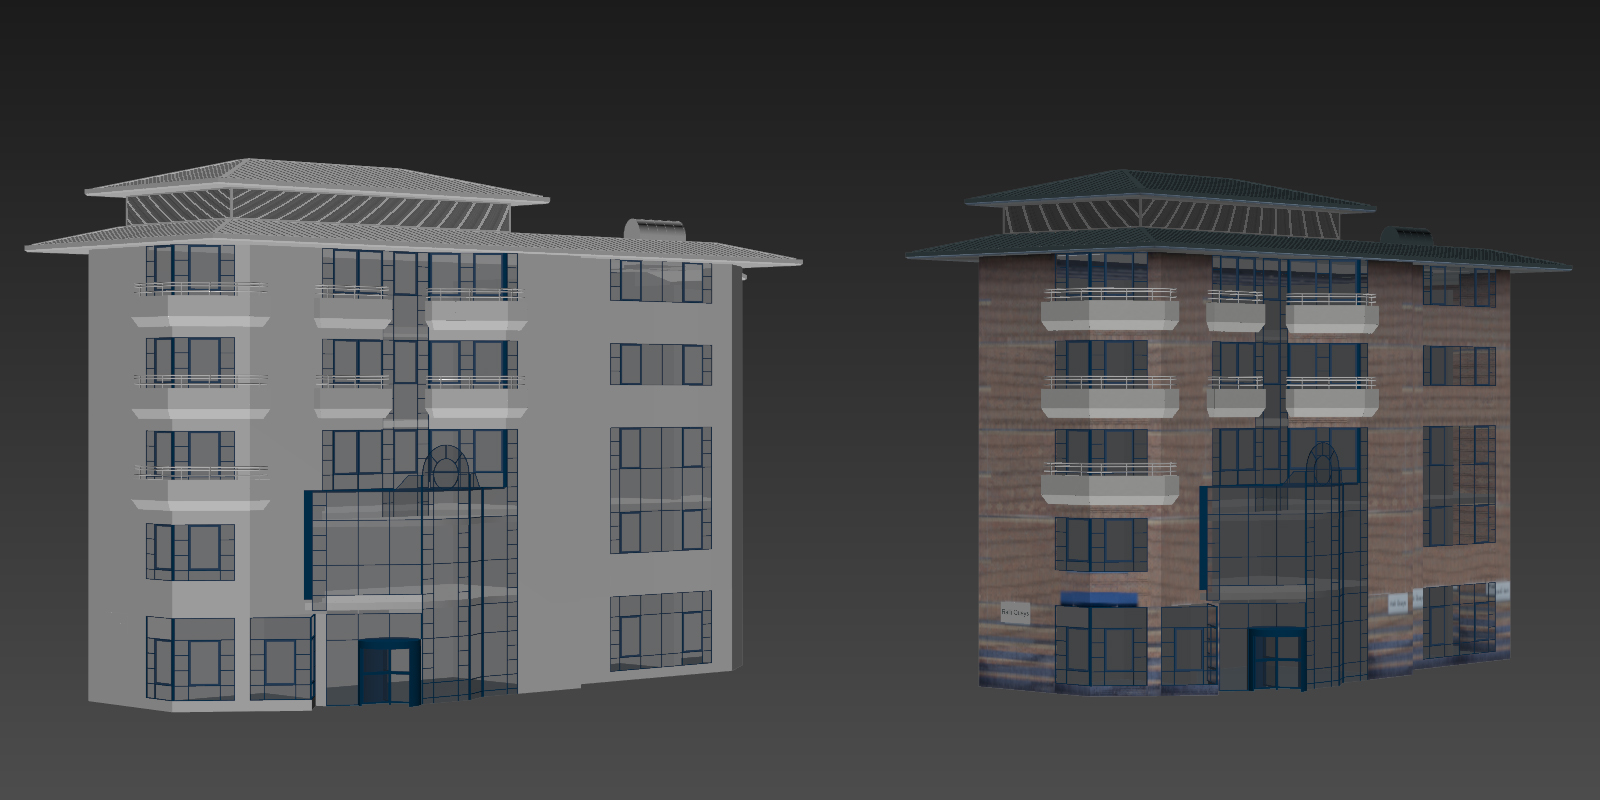 In this example the existing building is modeled with low level of detail. The windows are separate geometry with simple win-frames. The balconies are modeled because the camera position is close and convex geometry gives sense of depth. The brick texture is stitched from multiple photos.